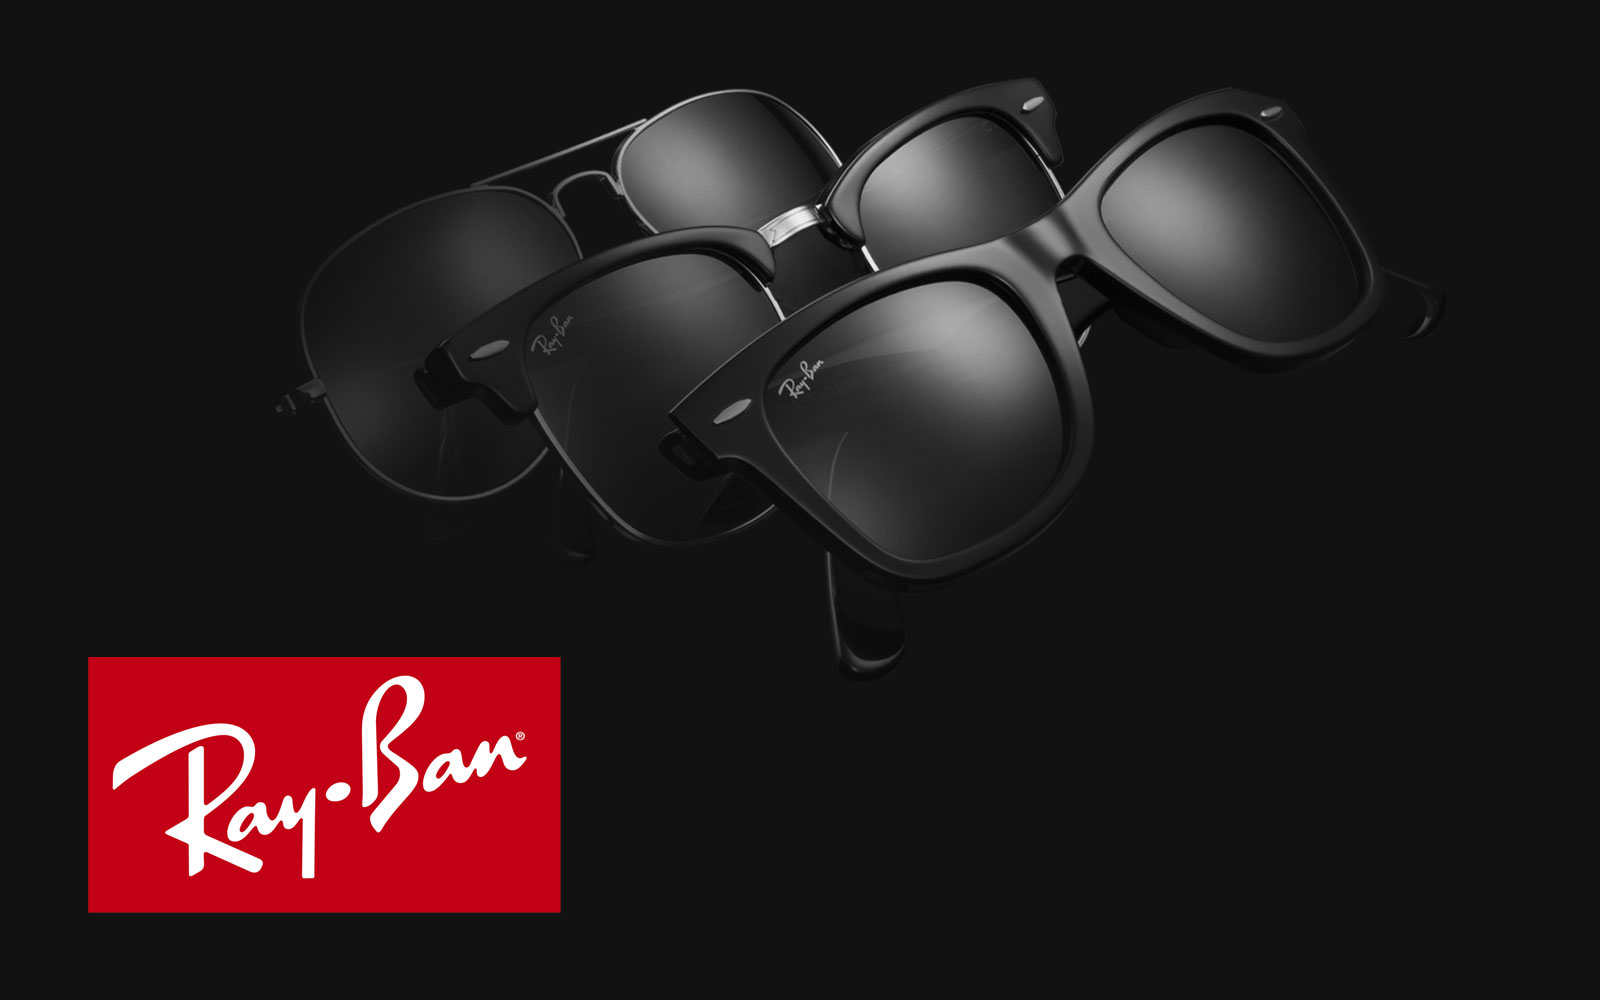 d9952f3961697 We have good news! Ray-Ban have released some brand new models and lens  options for the Summer 17 season… Want to know more, you re in the right  place!